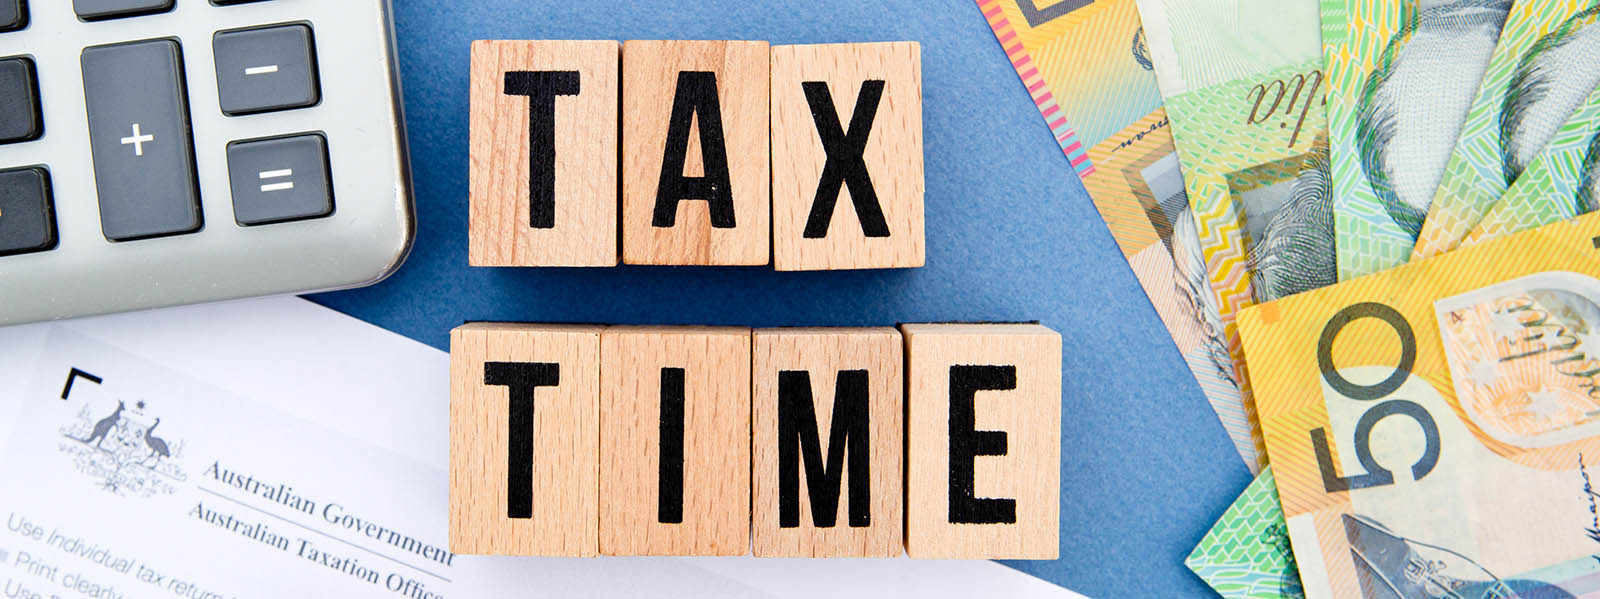 Tax Time Resources